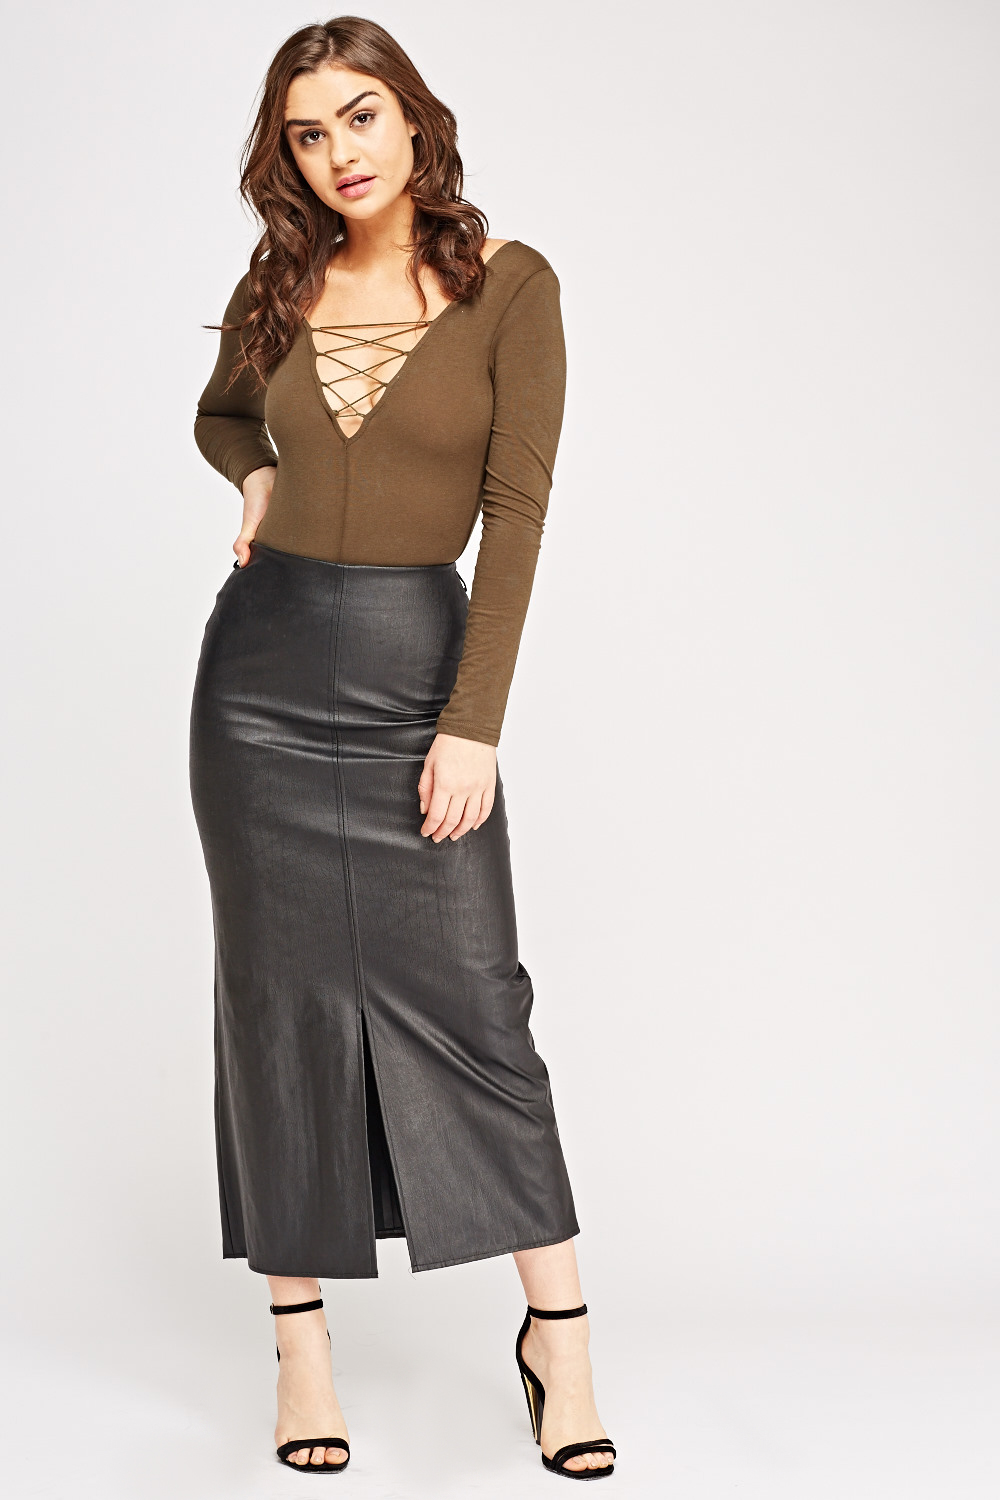 Kaboo Bra Outfit With White Shirt Monica Beatrice Welburn The Elgin Avenue Leather Skirt